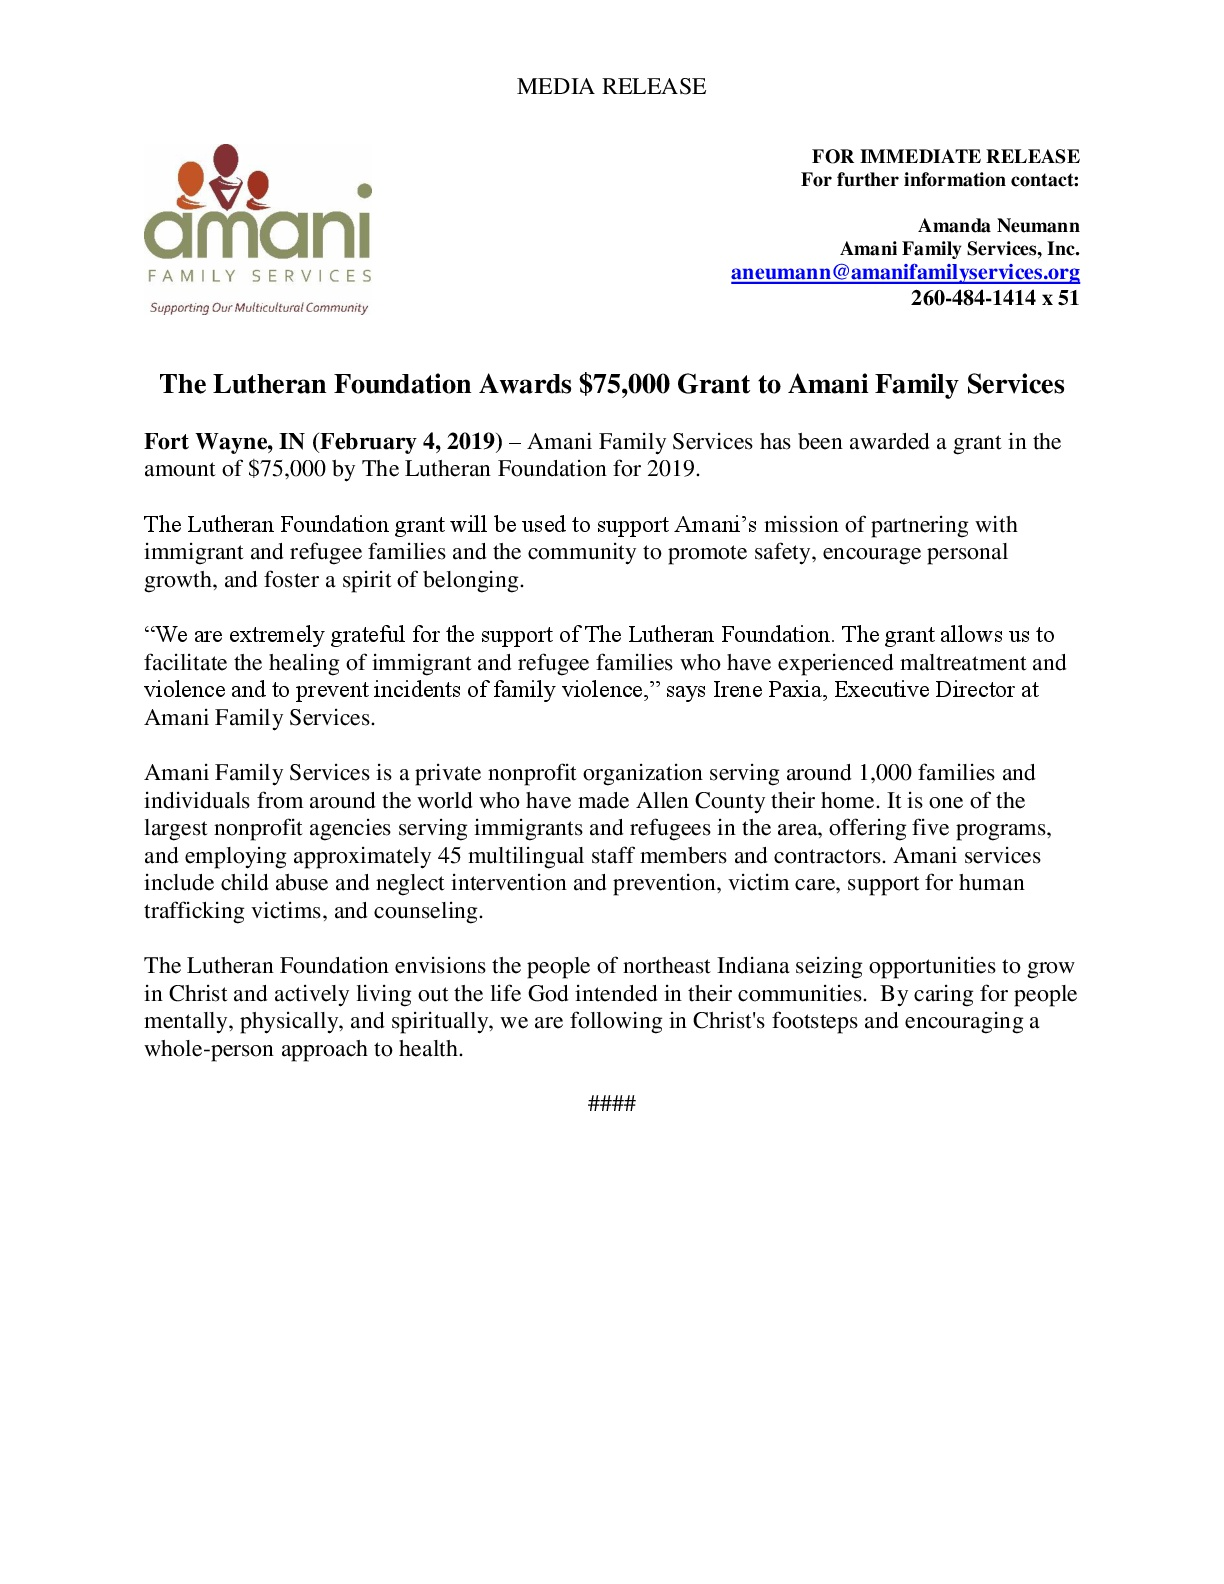 The Lutheran Foundation 2019 Press Release - Amani Family Services-001.jpg